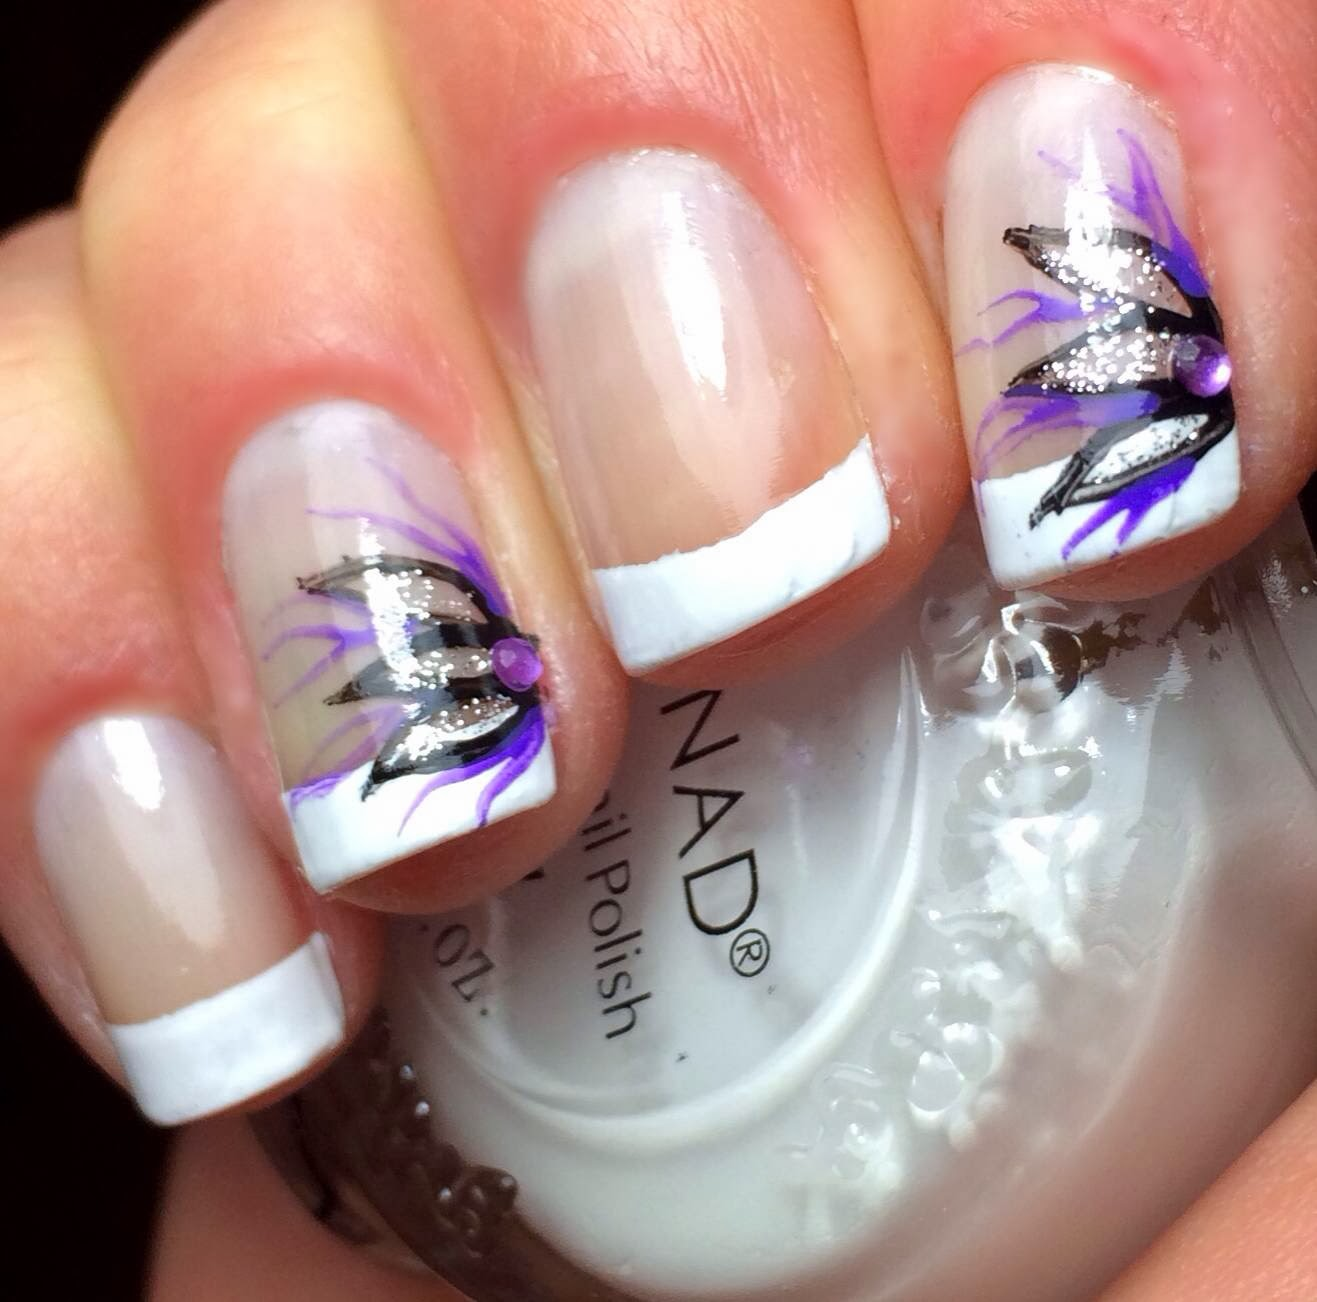 French tip design acrylic nails nails gallery french tip design acrylic nails photos prinsesfo Image collections